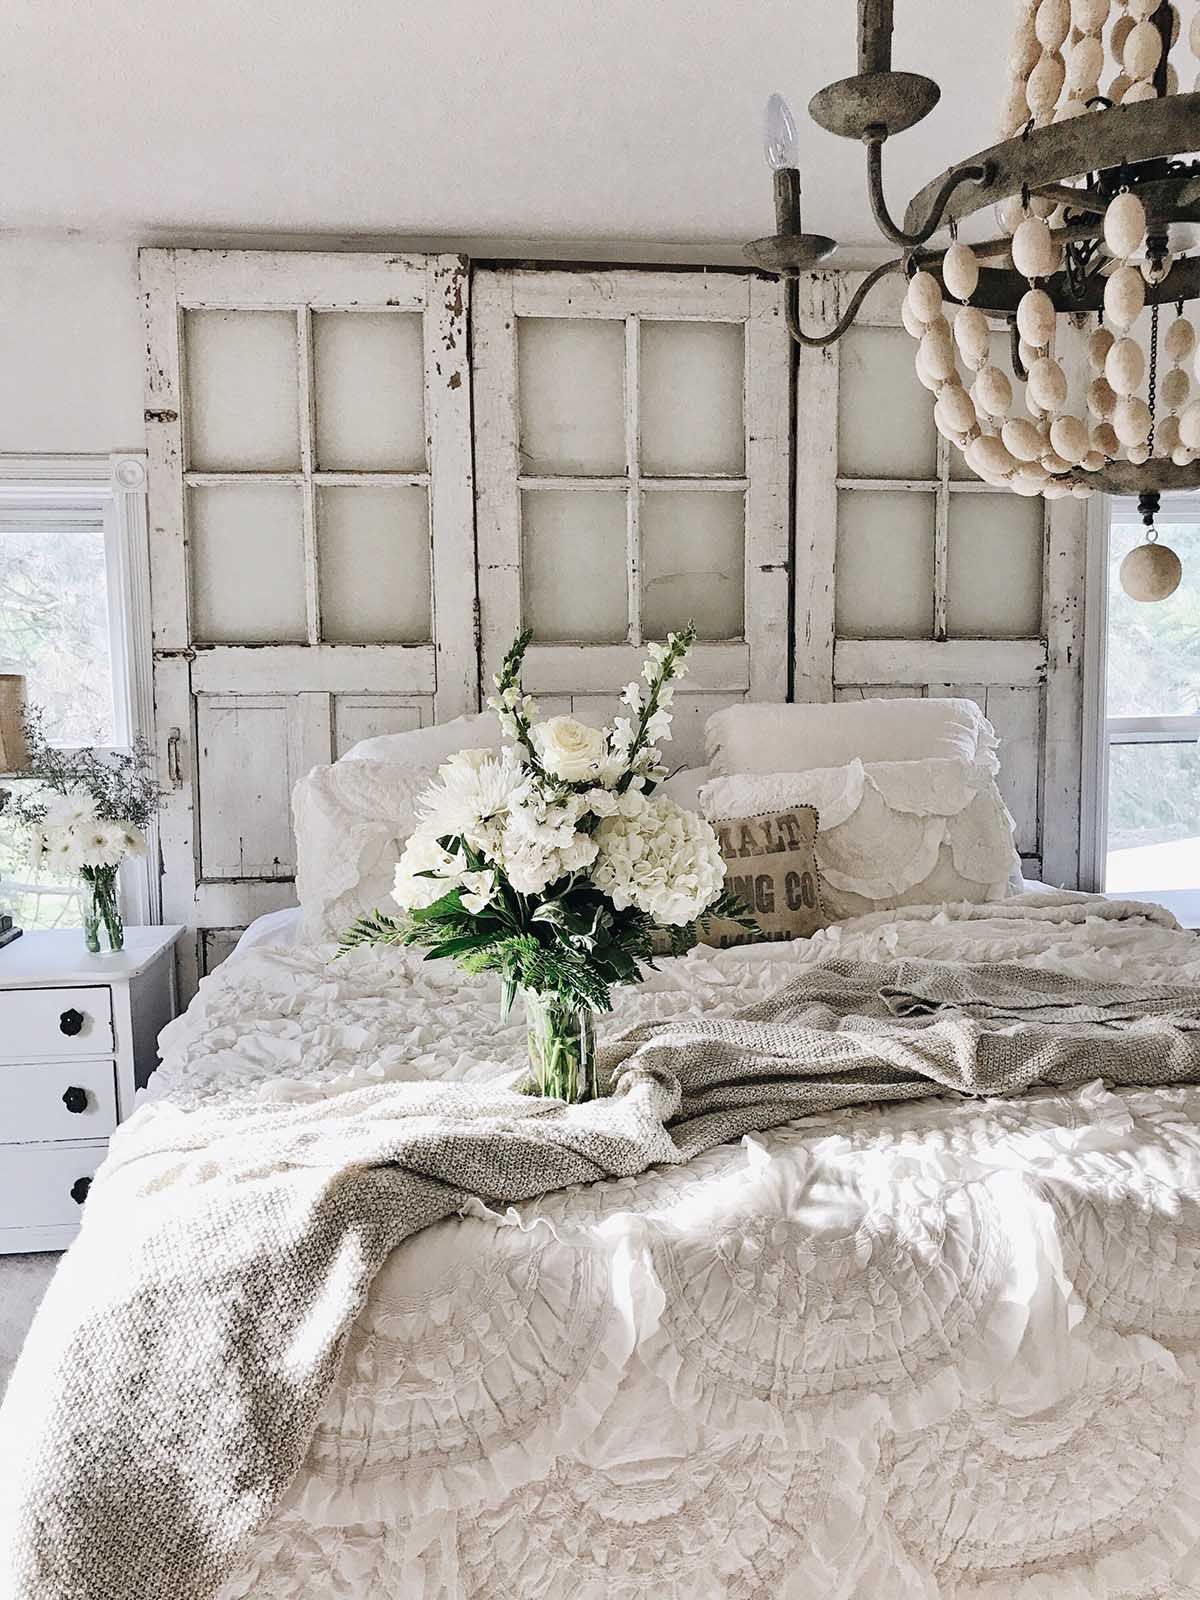 blue beautiful ideas rhveterangeekcom gray decorating headboard for designs french bedroomsrhcountrylivingcom light country bed style bedroom tufted in